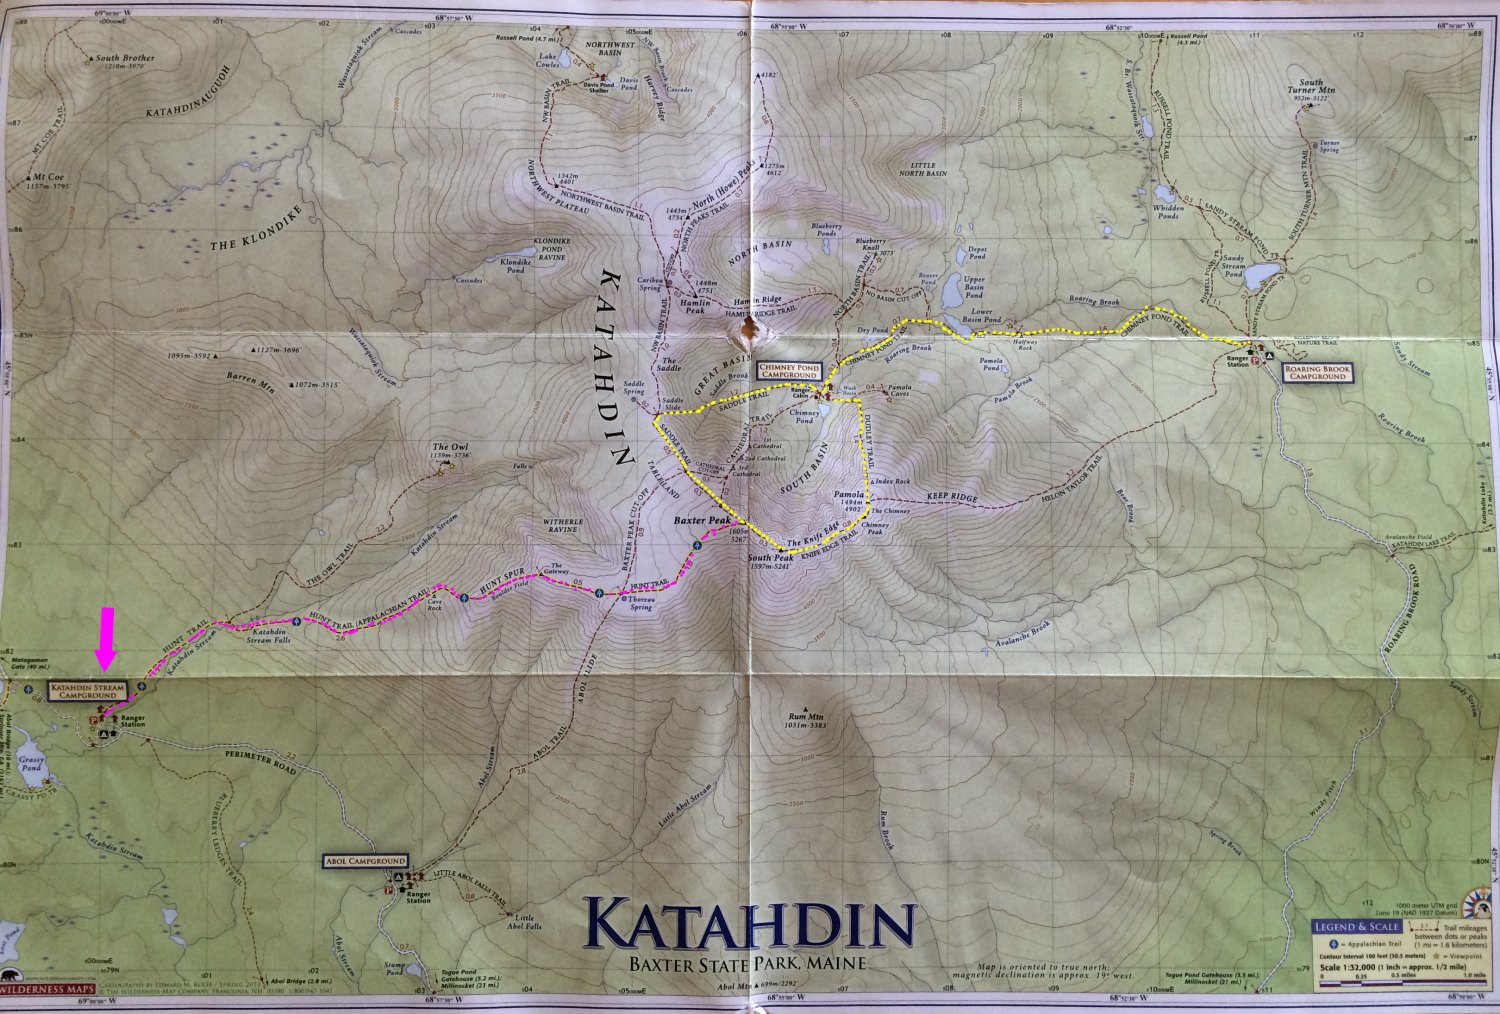 Hawaii Girl Adventures: Mt. Katahdin - Hiking